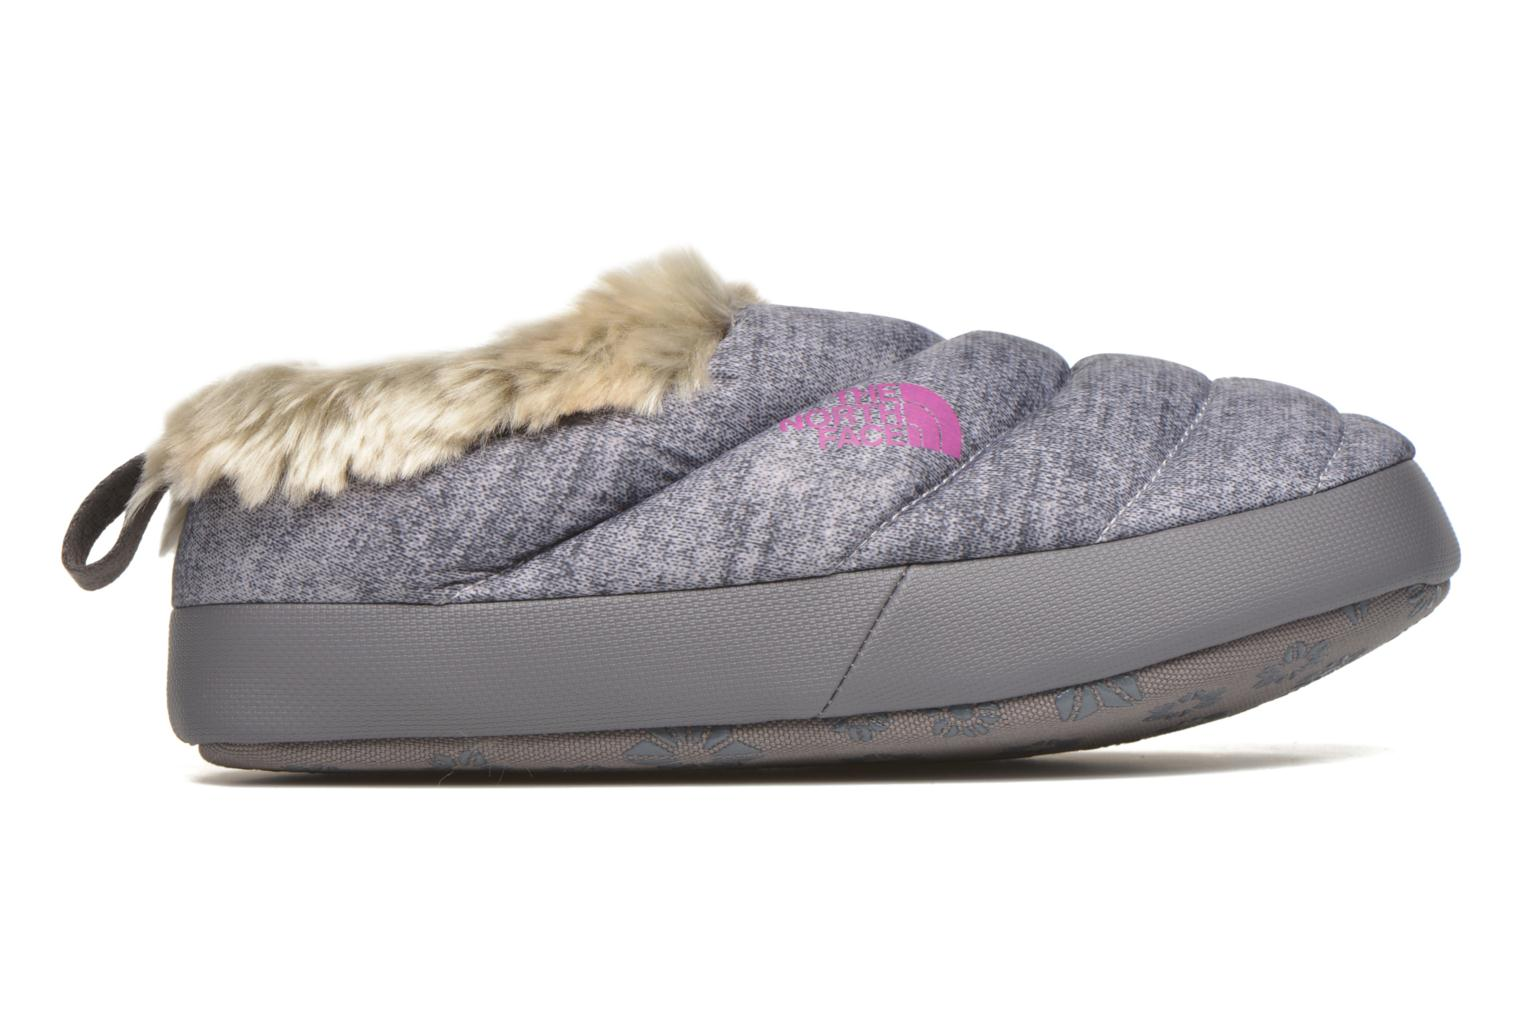 W Nse Tent Mule Faux Fur II Heather GreyLu